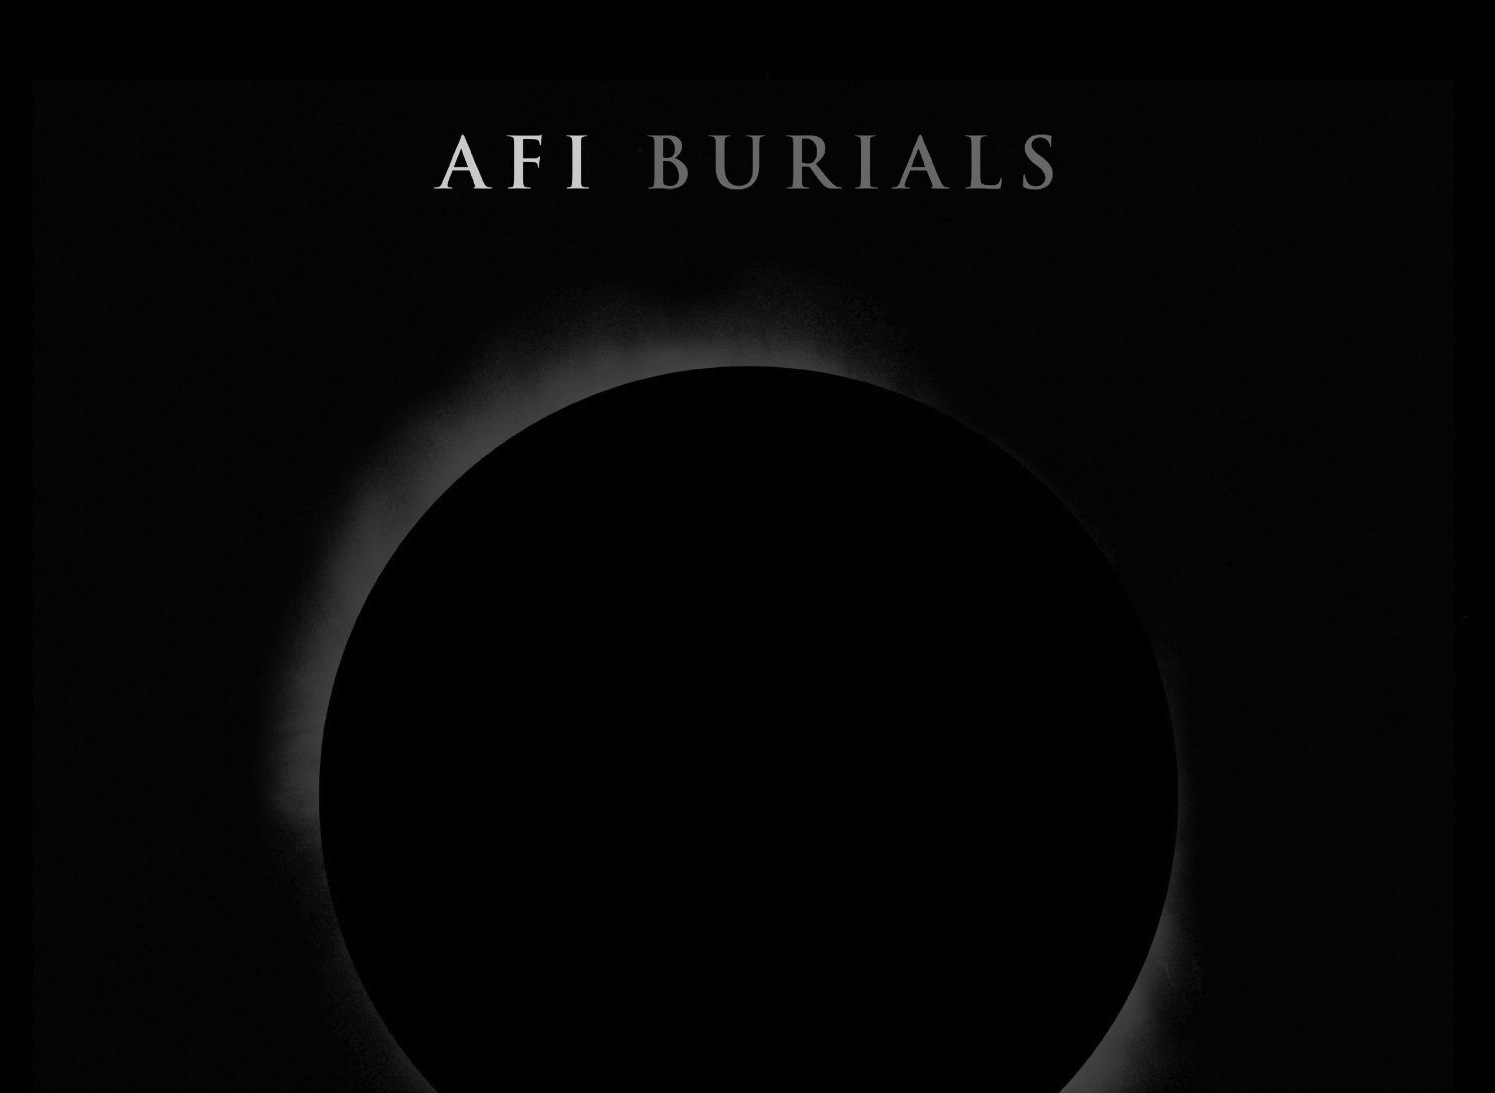 afi-burials-cropped